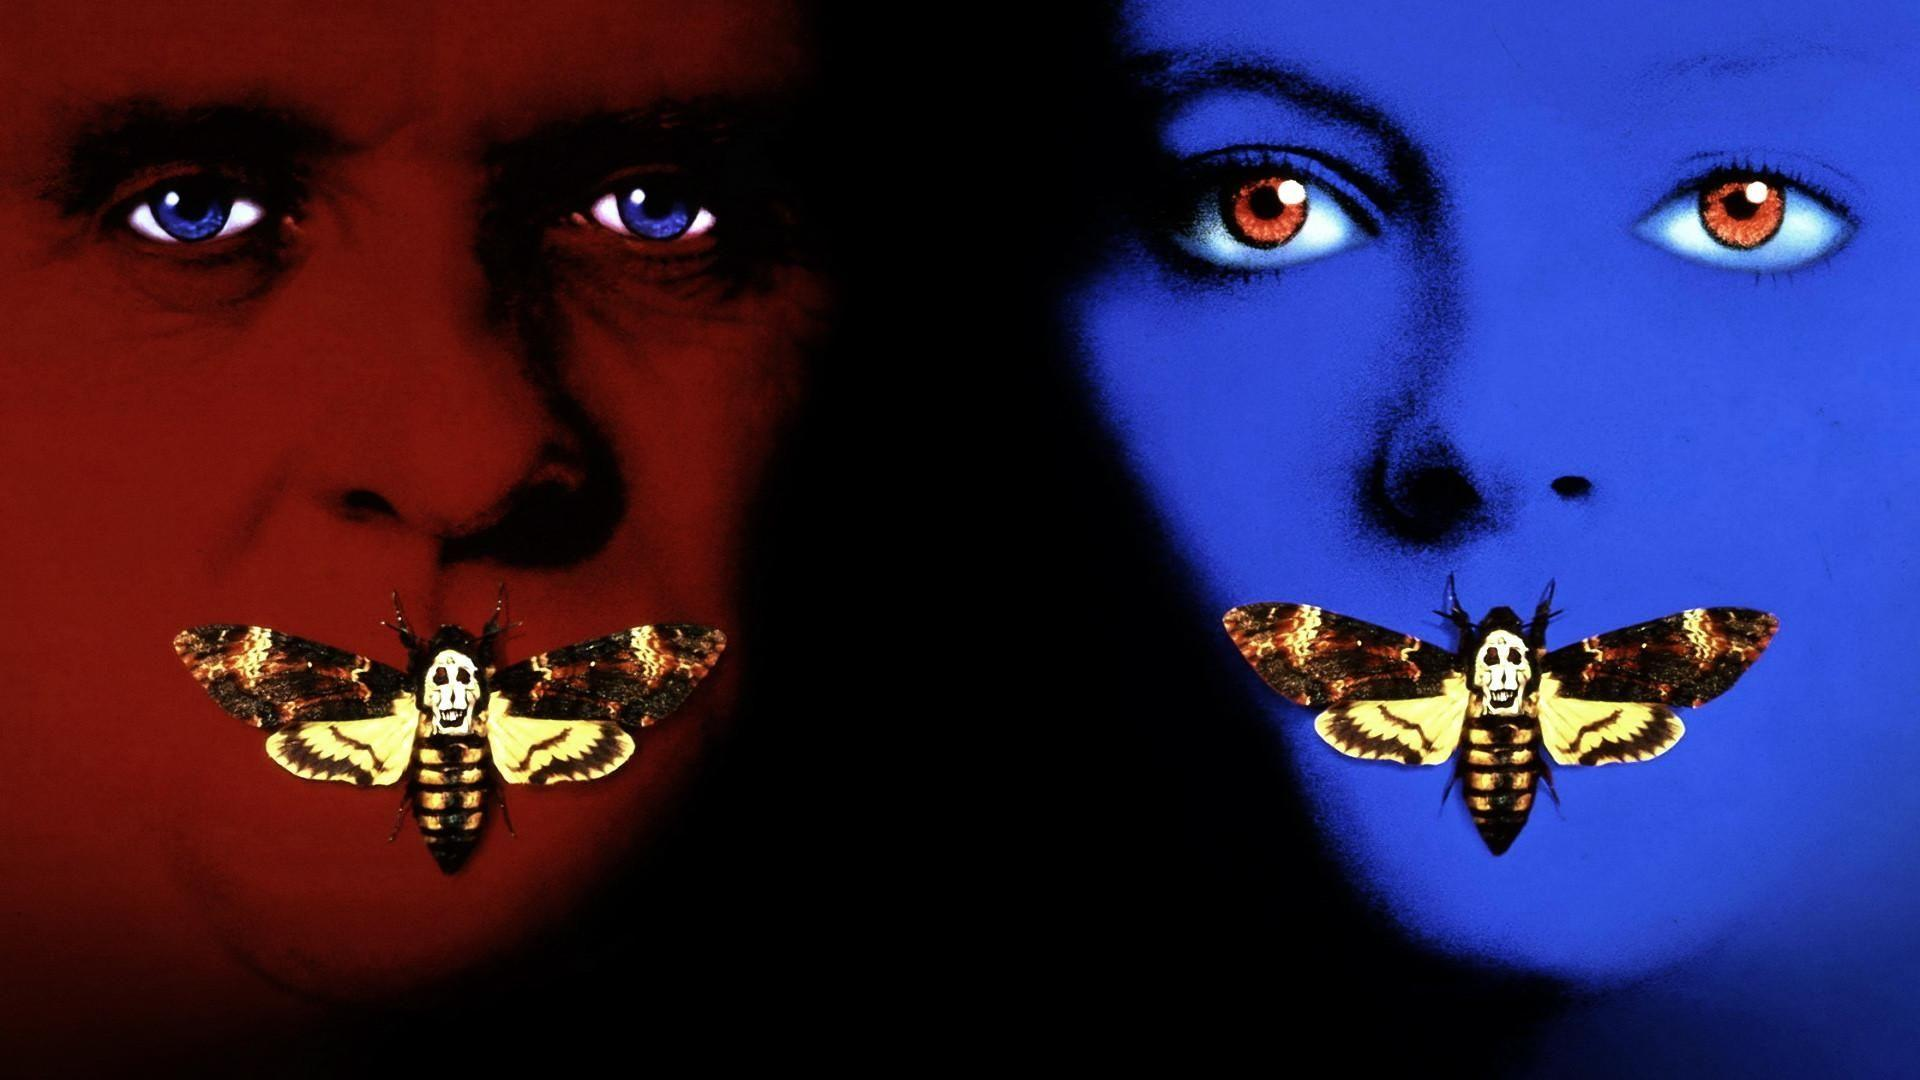 The Silence Of The Lambs Wallpapers 13 - 1920 X 1080 | stmed.net